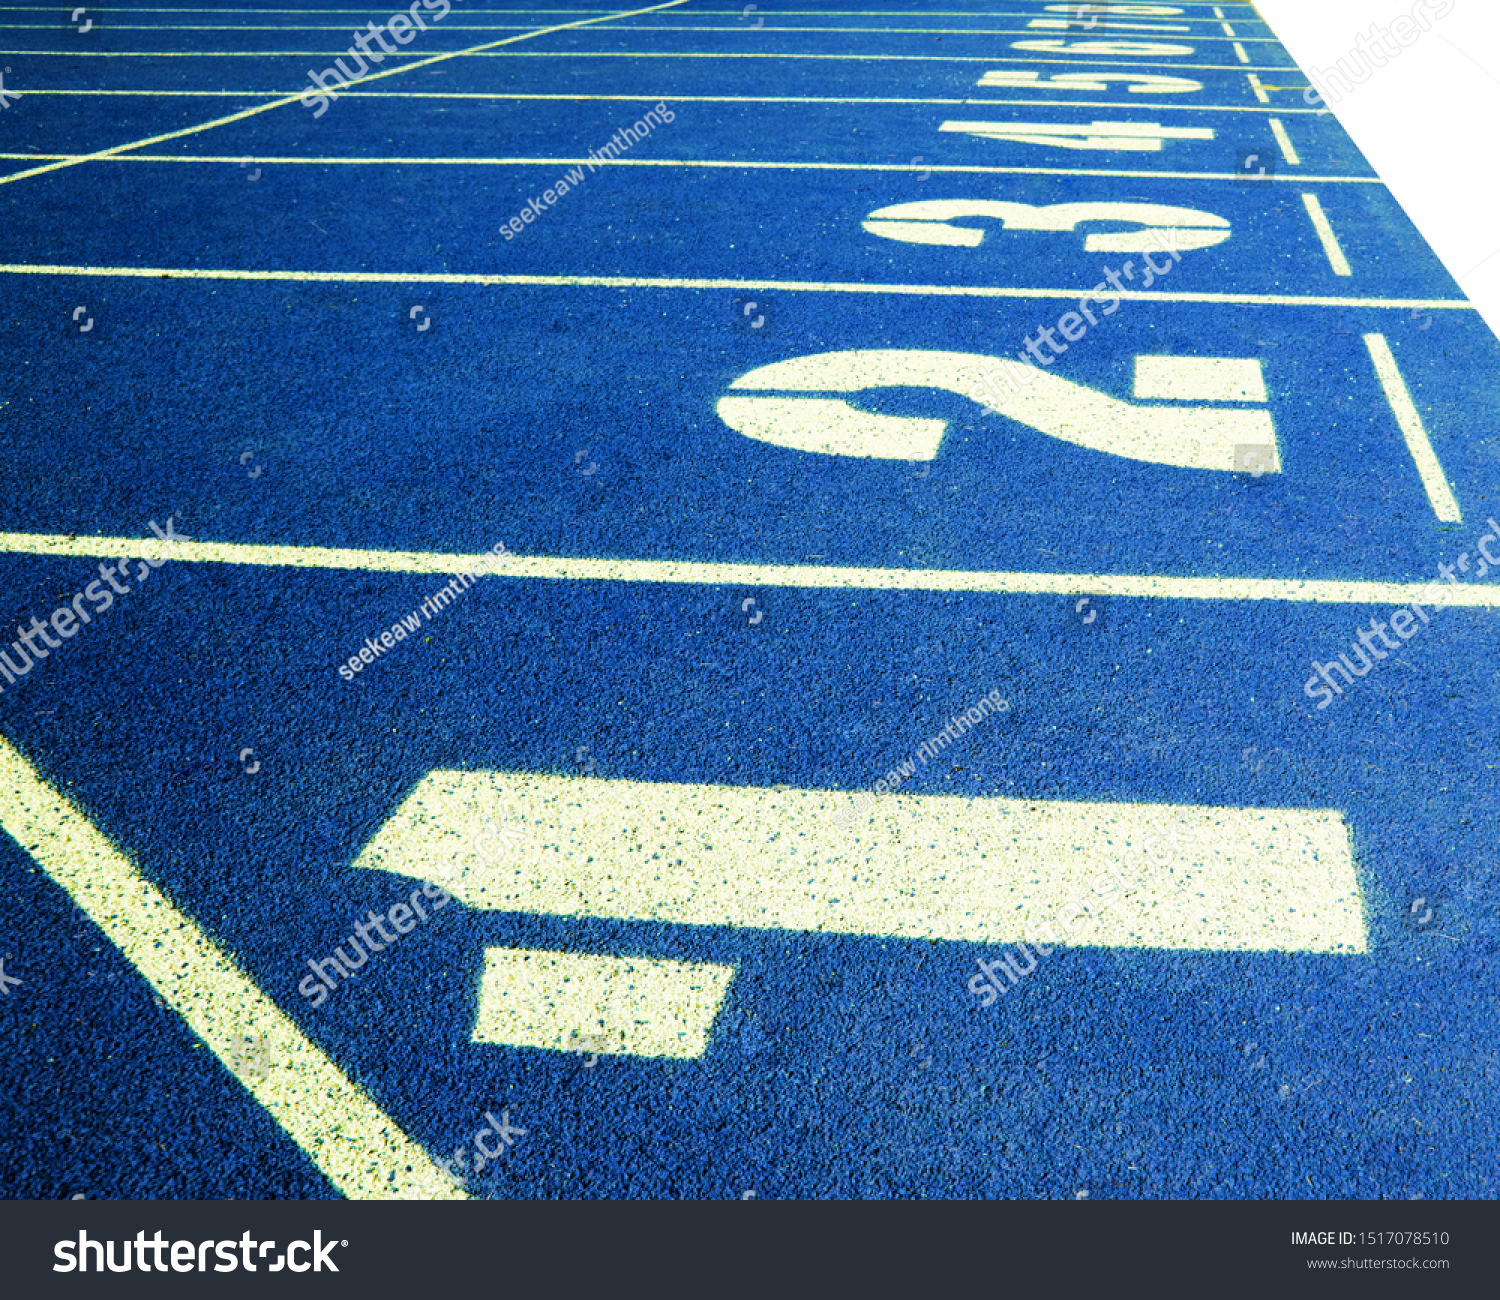 Running track for the athletes background, Athlete Track or Running Track #1517078510